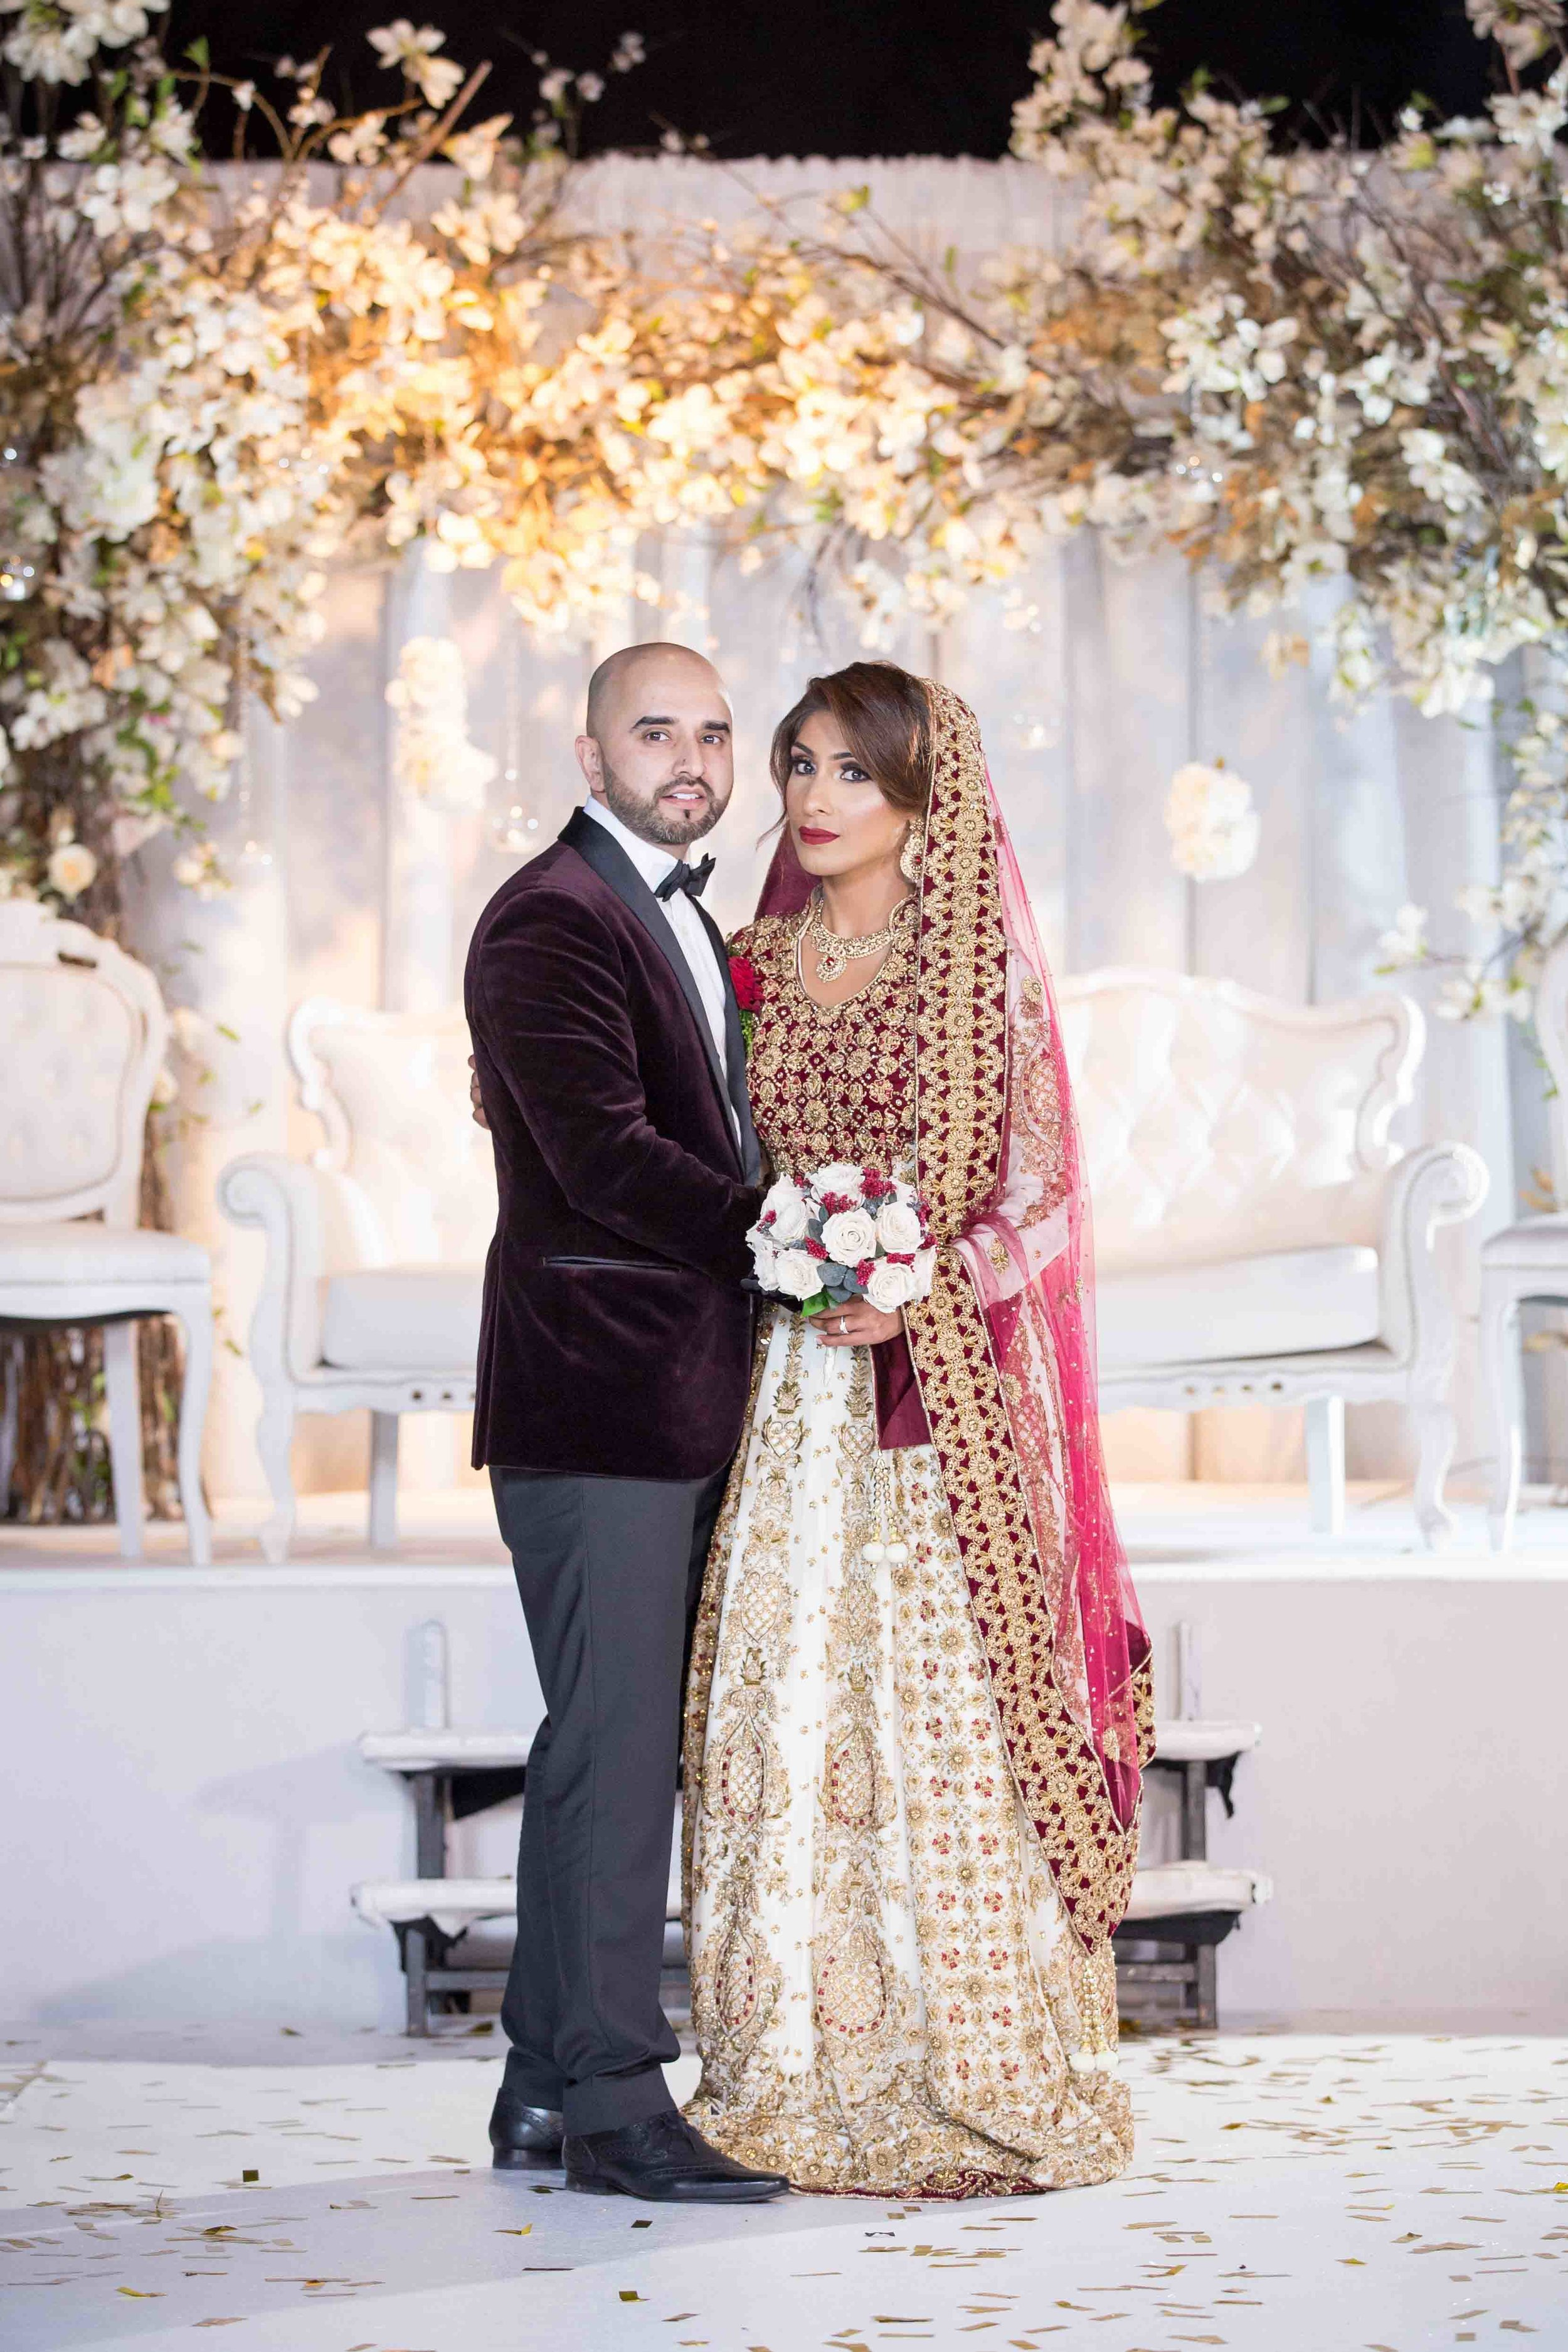 Asian Wedding Photographer Opu Sultan Photography Lyme Park Scotland Edinburgh Glasgow London Manchester Liverpool Birmingham Wedding Photos prewed shoot Azman & Saira Blog-143.jpg